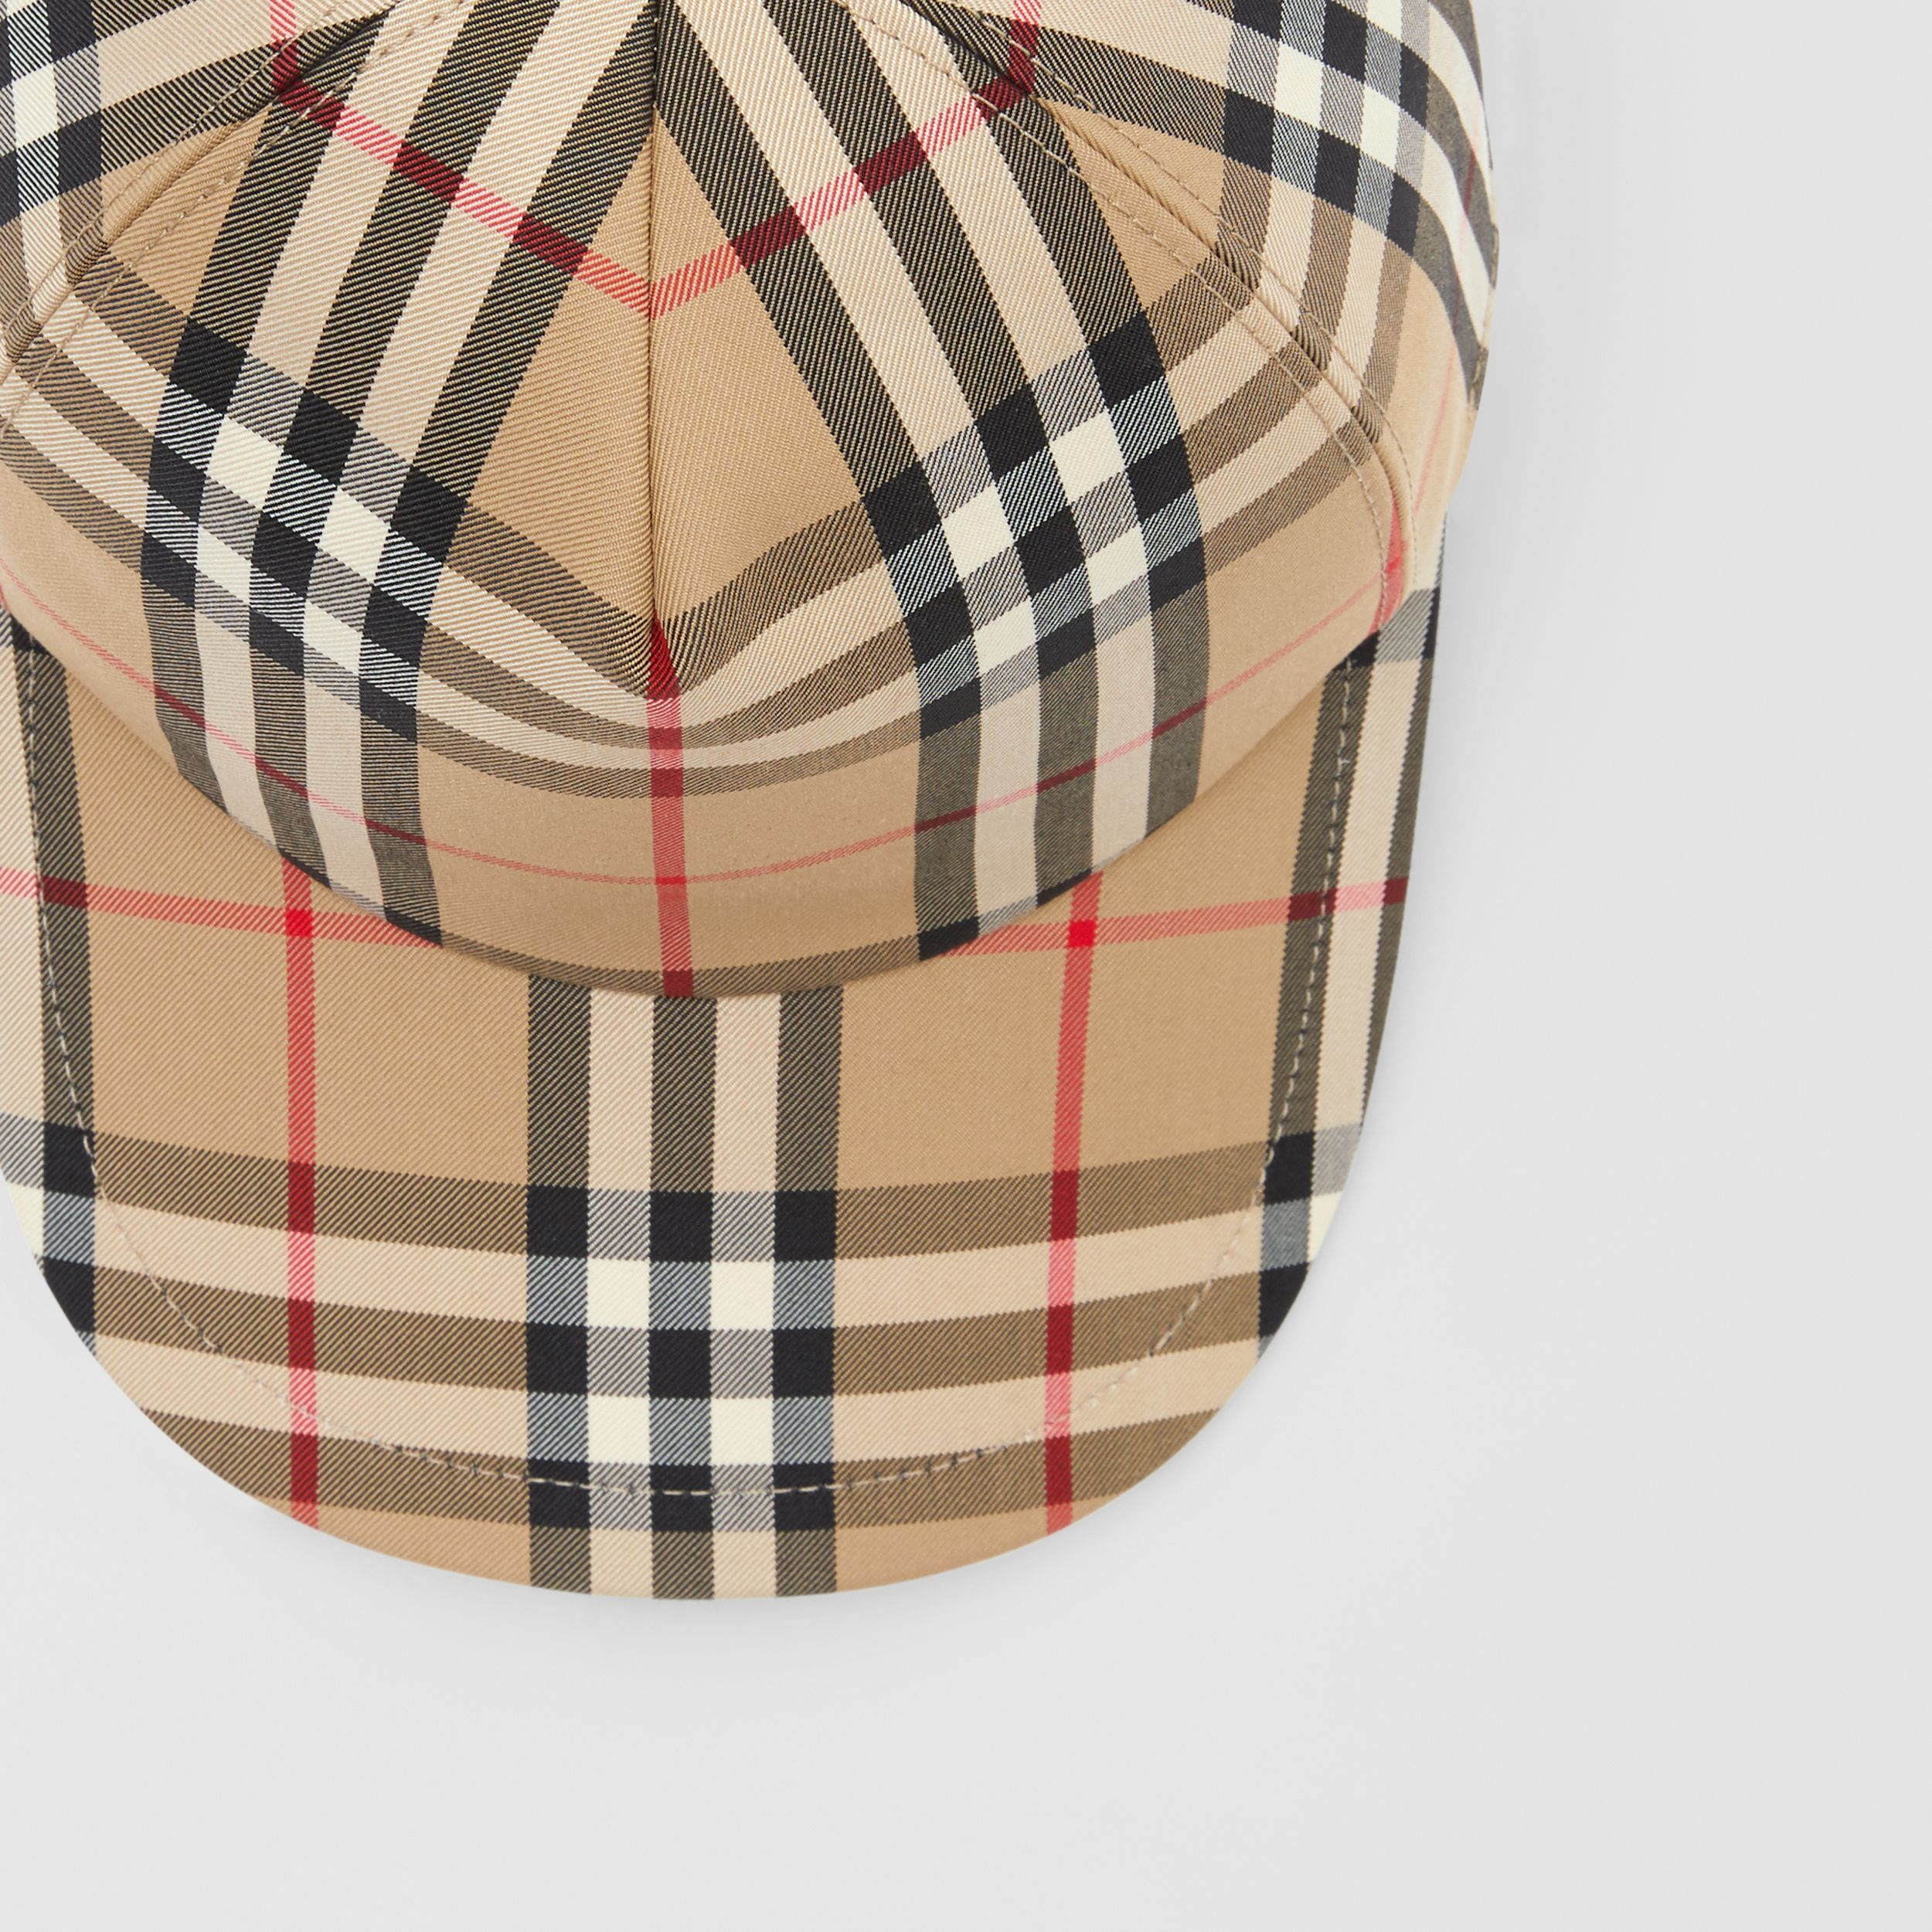 Logo Appliqué Vintage Check Baseball Cap in Archive Beige | Burberry Canada - 2